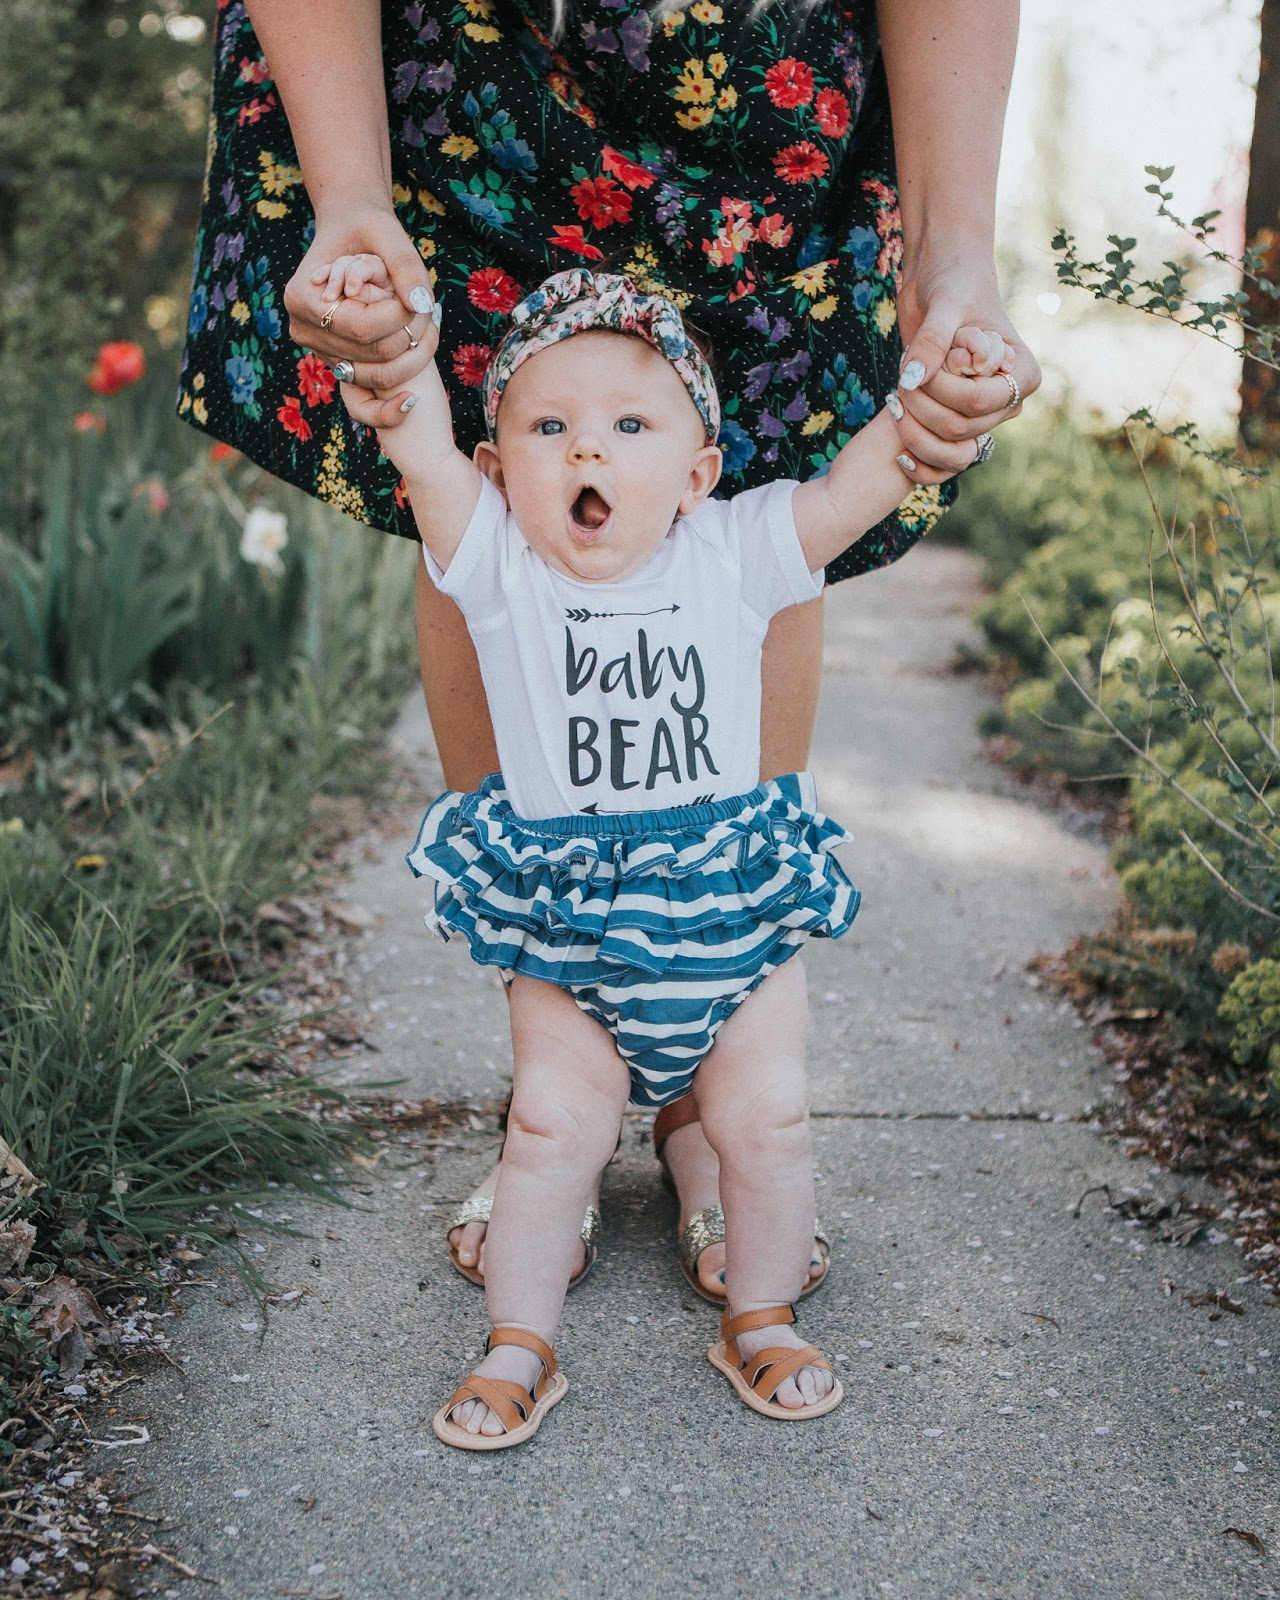 Baby Bear, Jane.com, Beckaloo